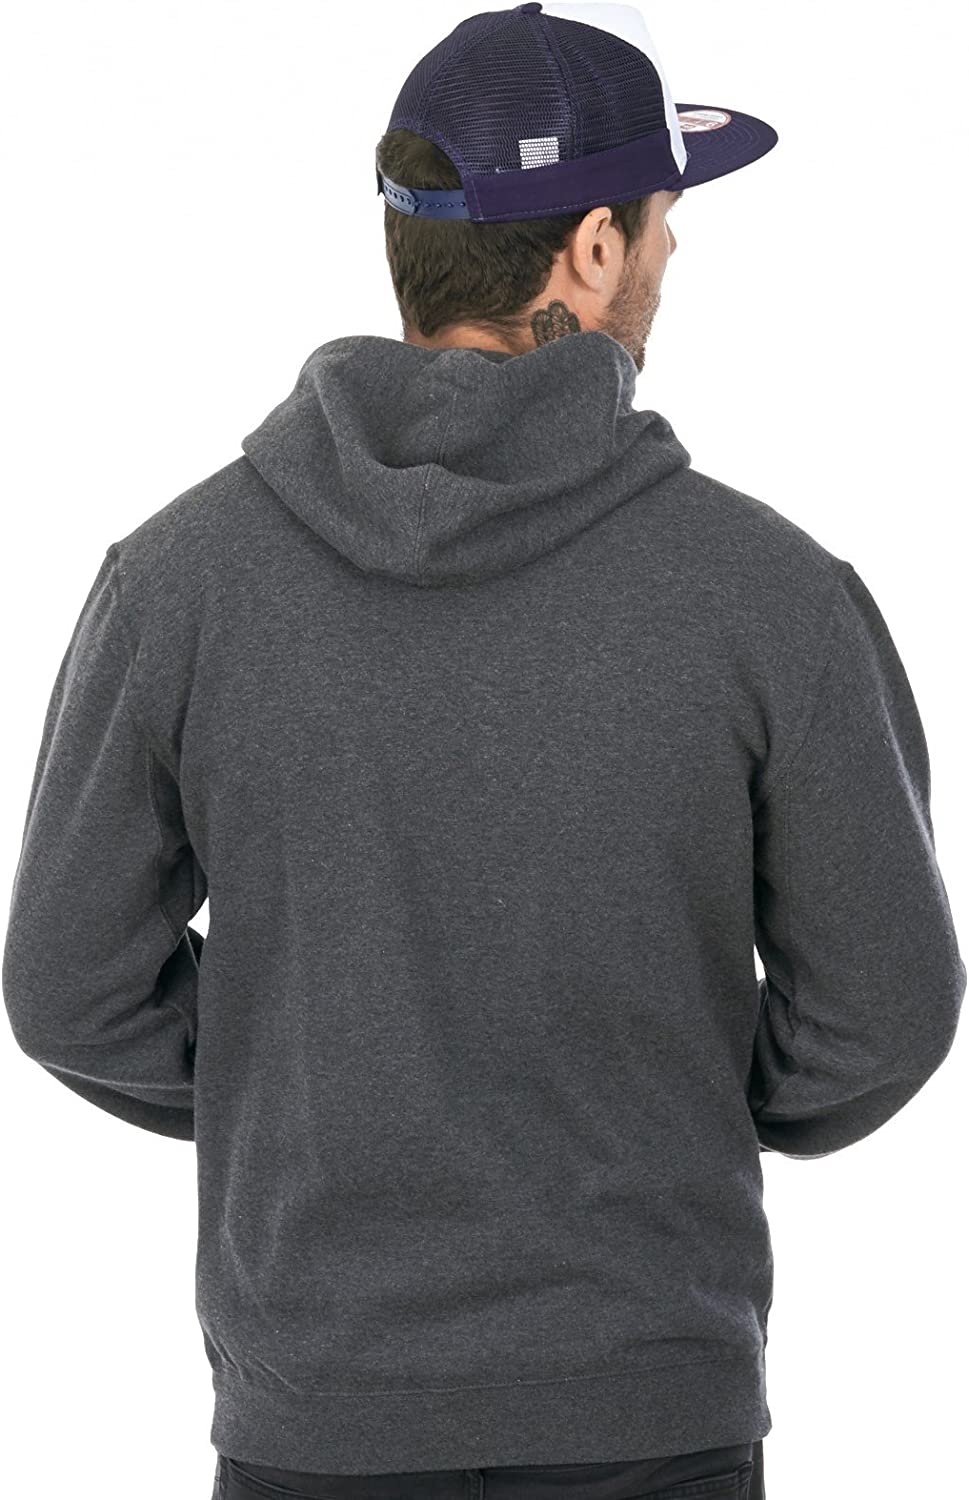 Troy Lee Designs Mens Signature Pullover Hoodie-Small